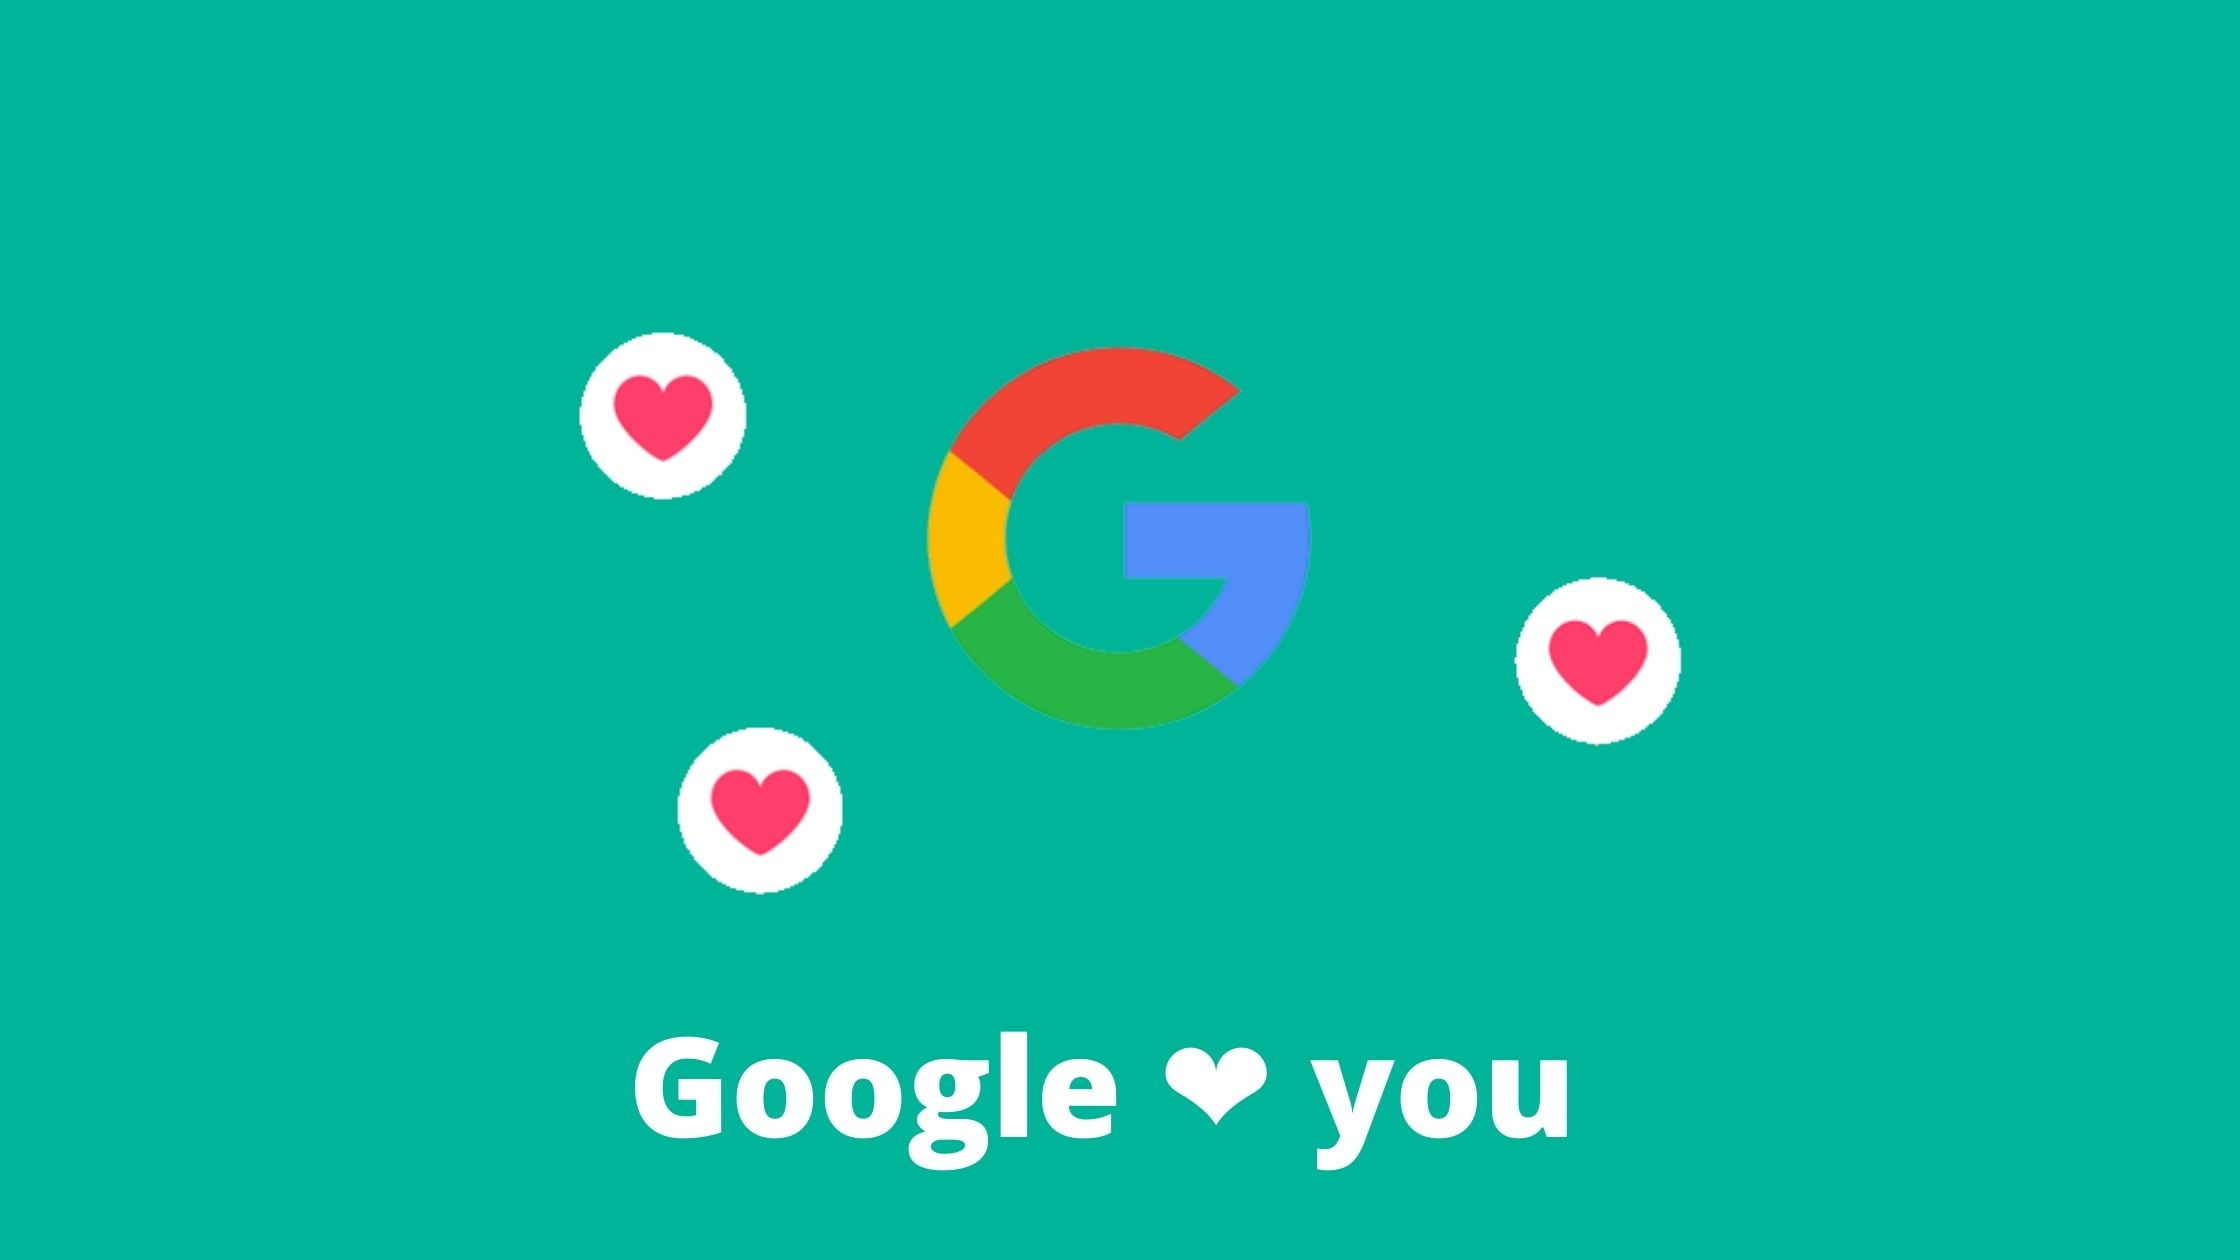 SEO trend 2; Google loves you